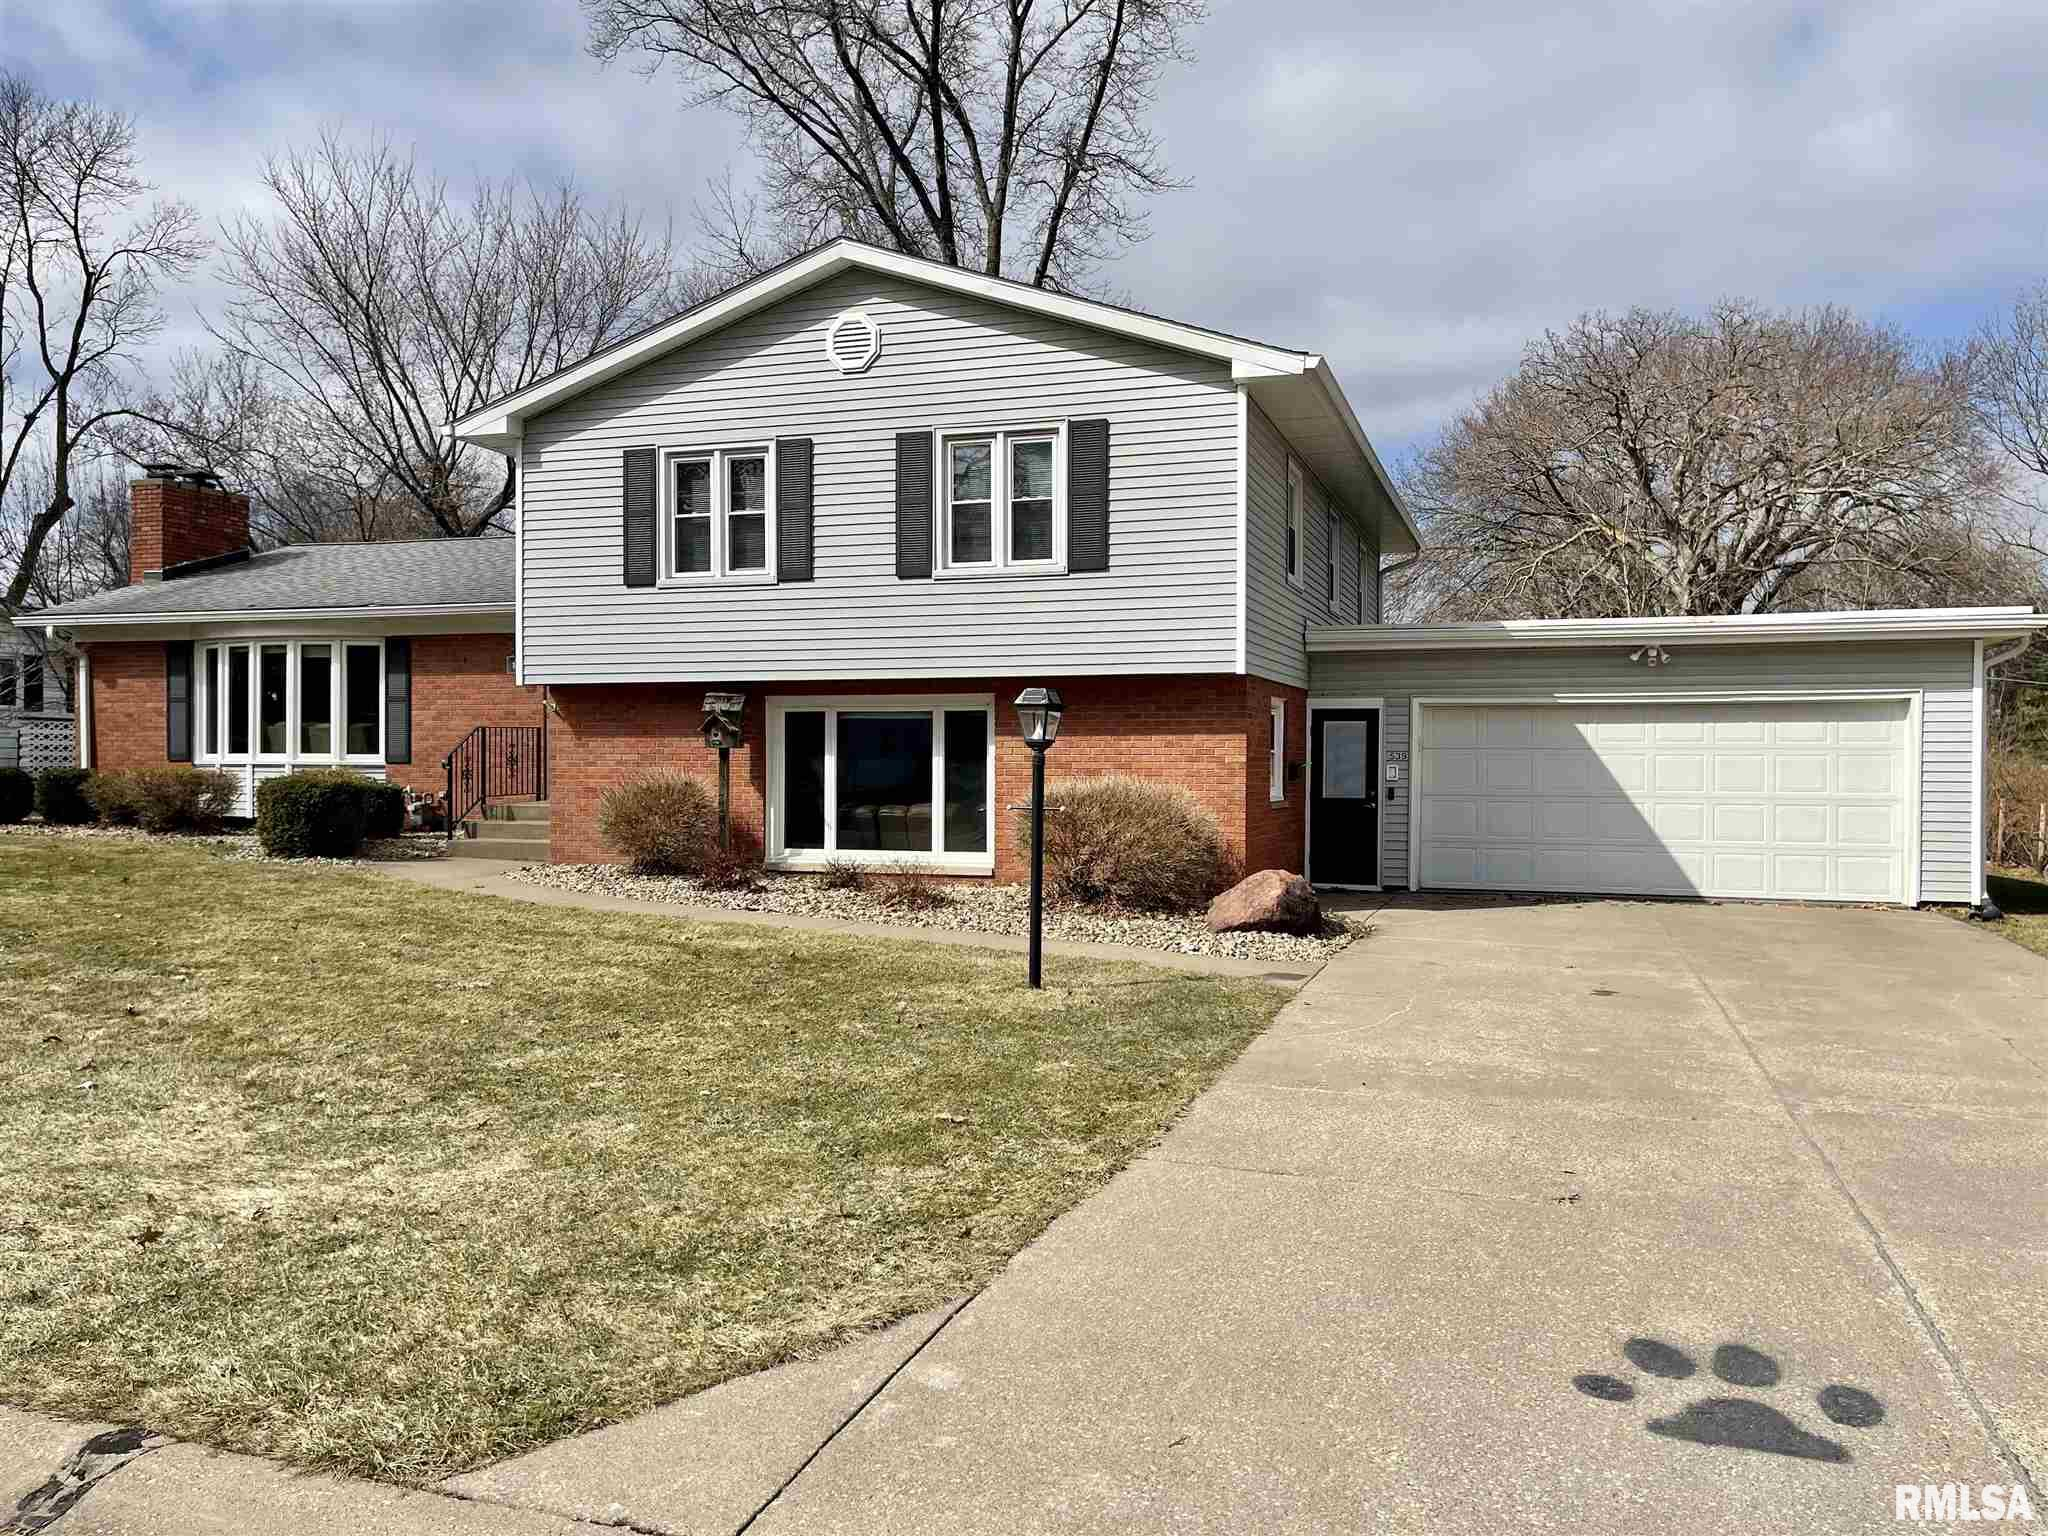 539 26TH Property Photo - East Moline, IL real estate listing